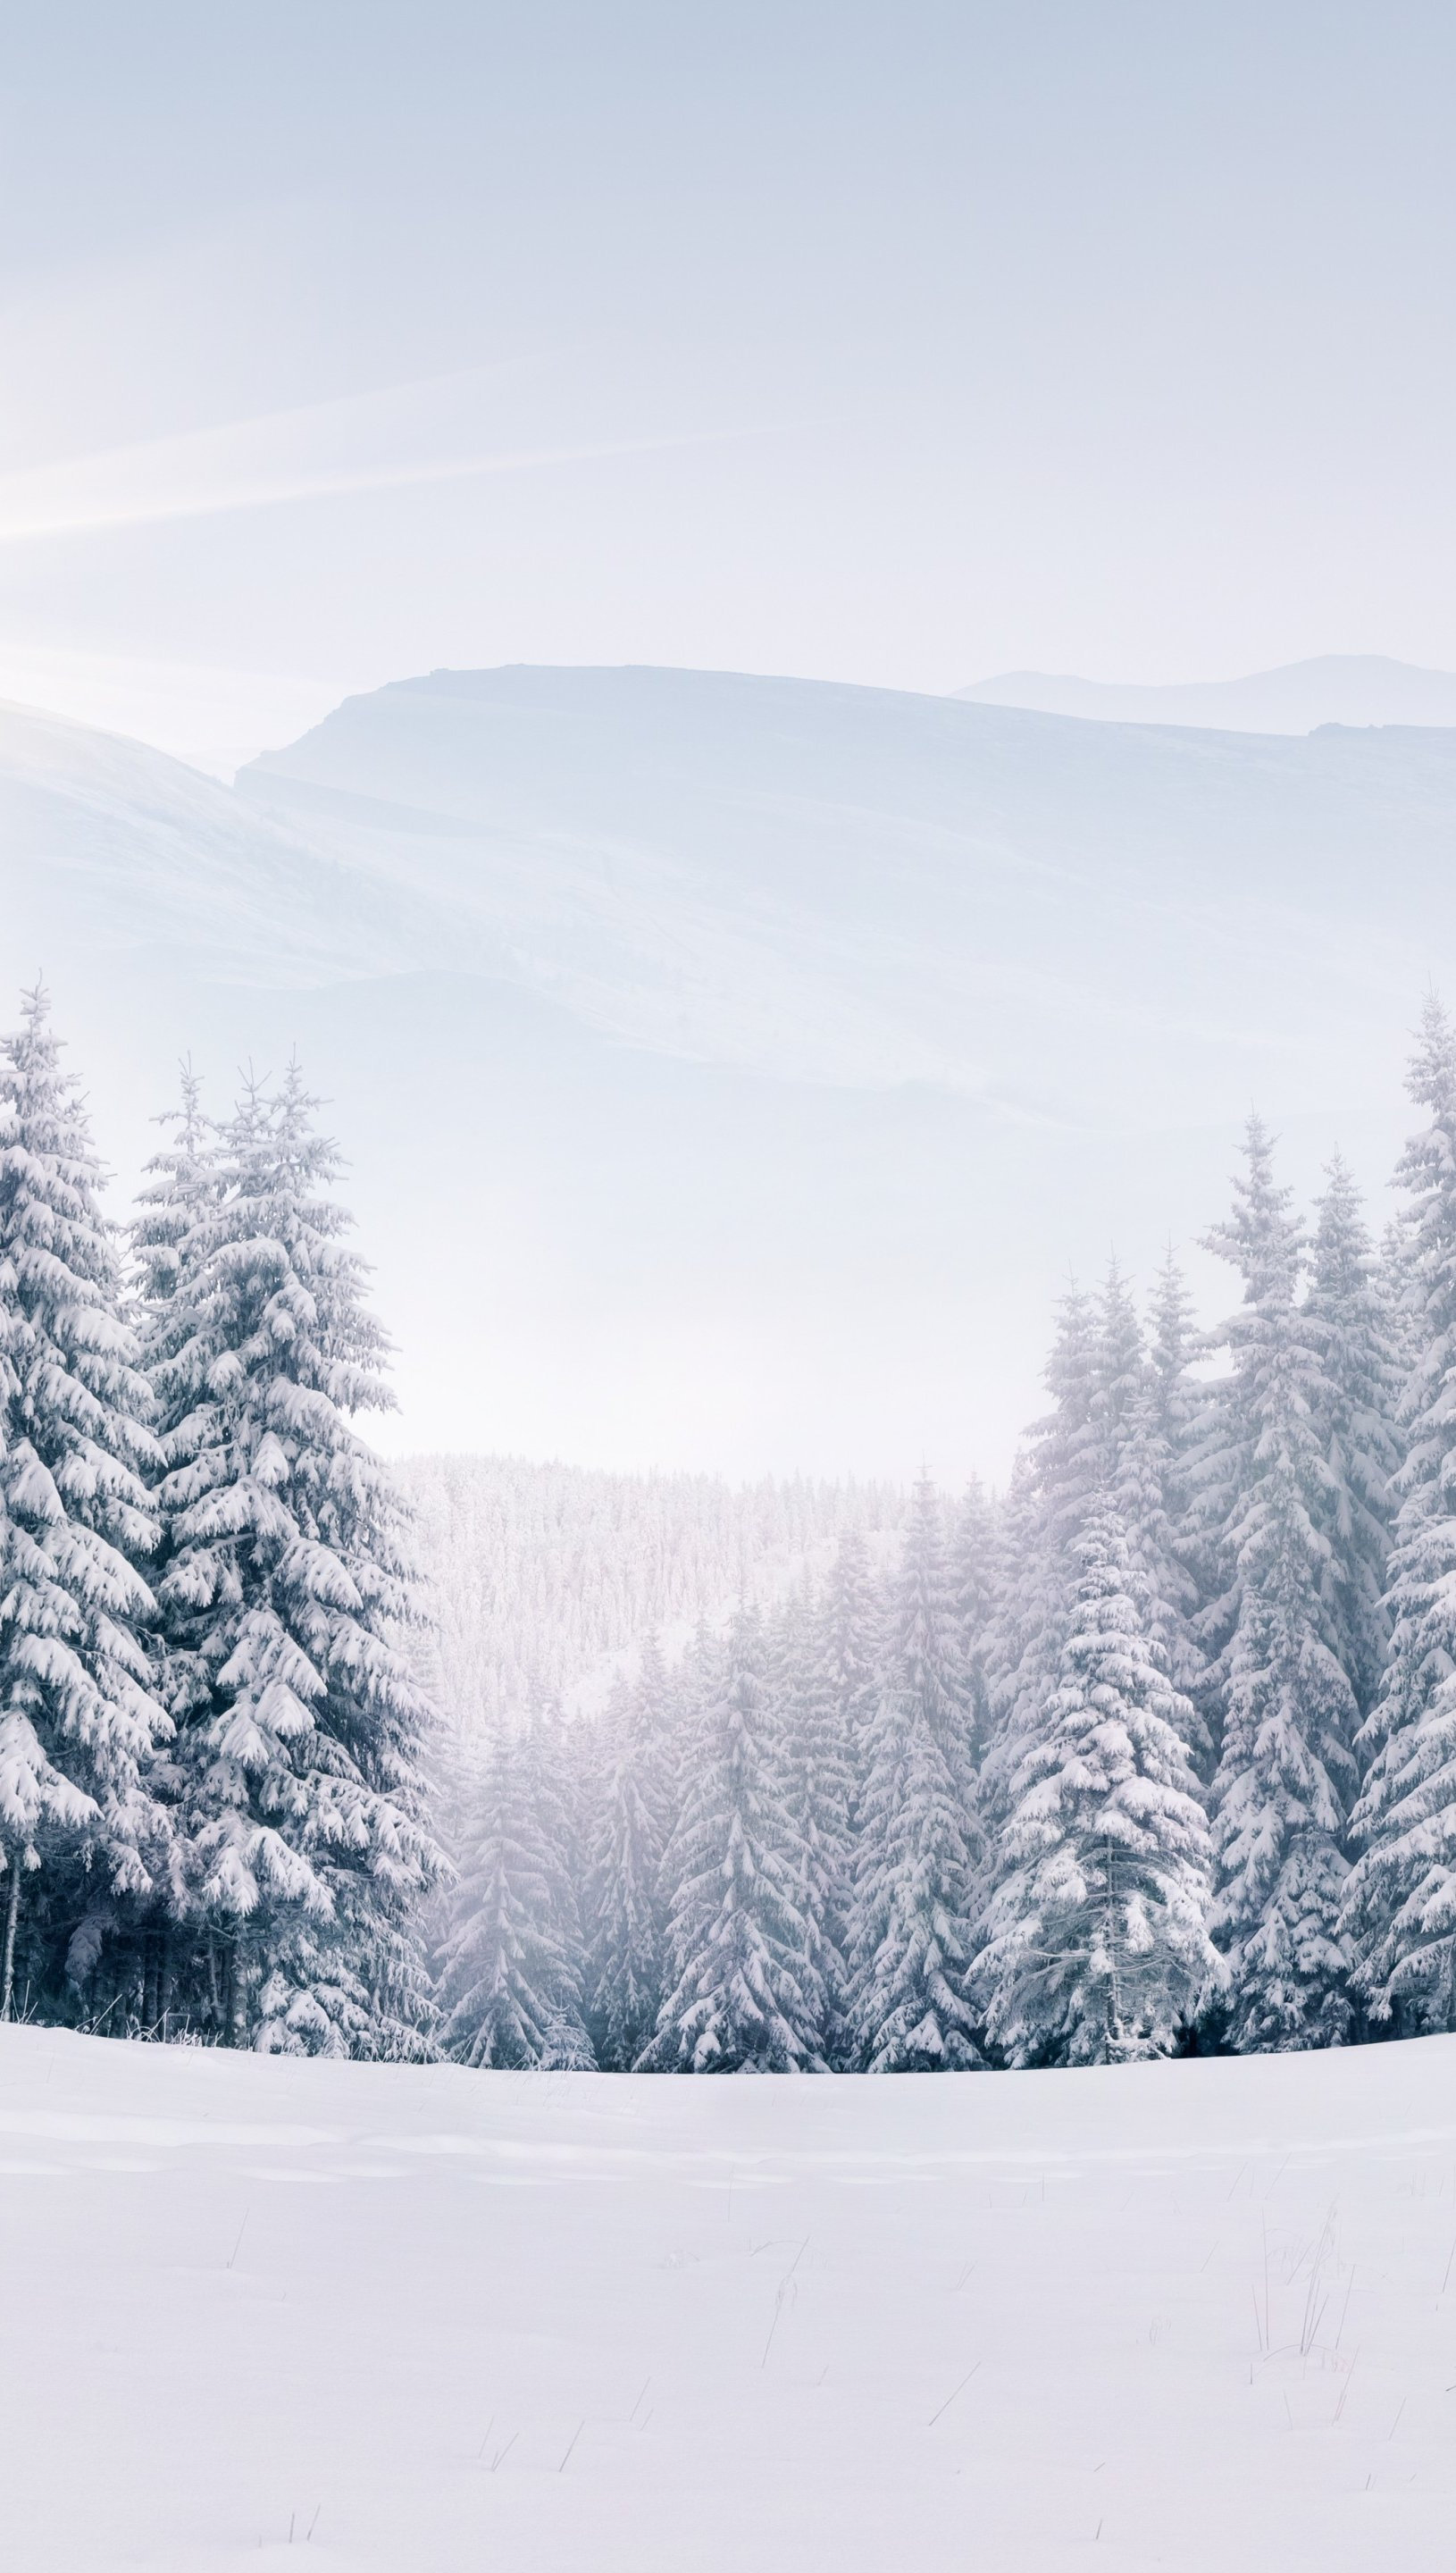 Wallpaper Pine trees in snowy forest in winter Vertical